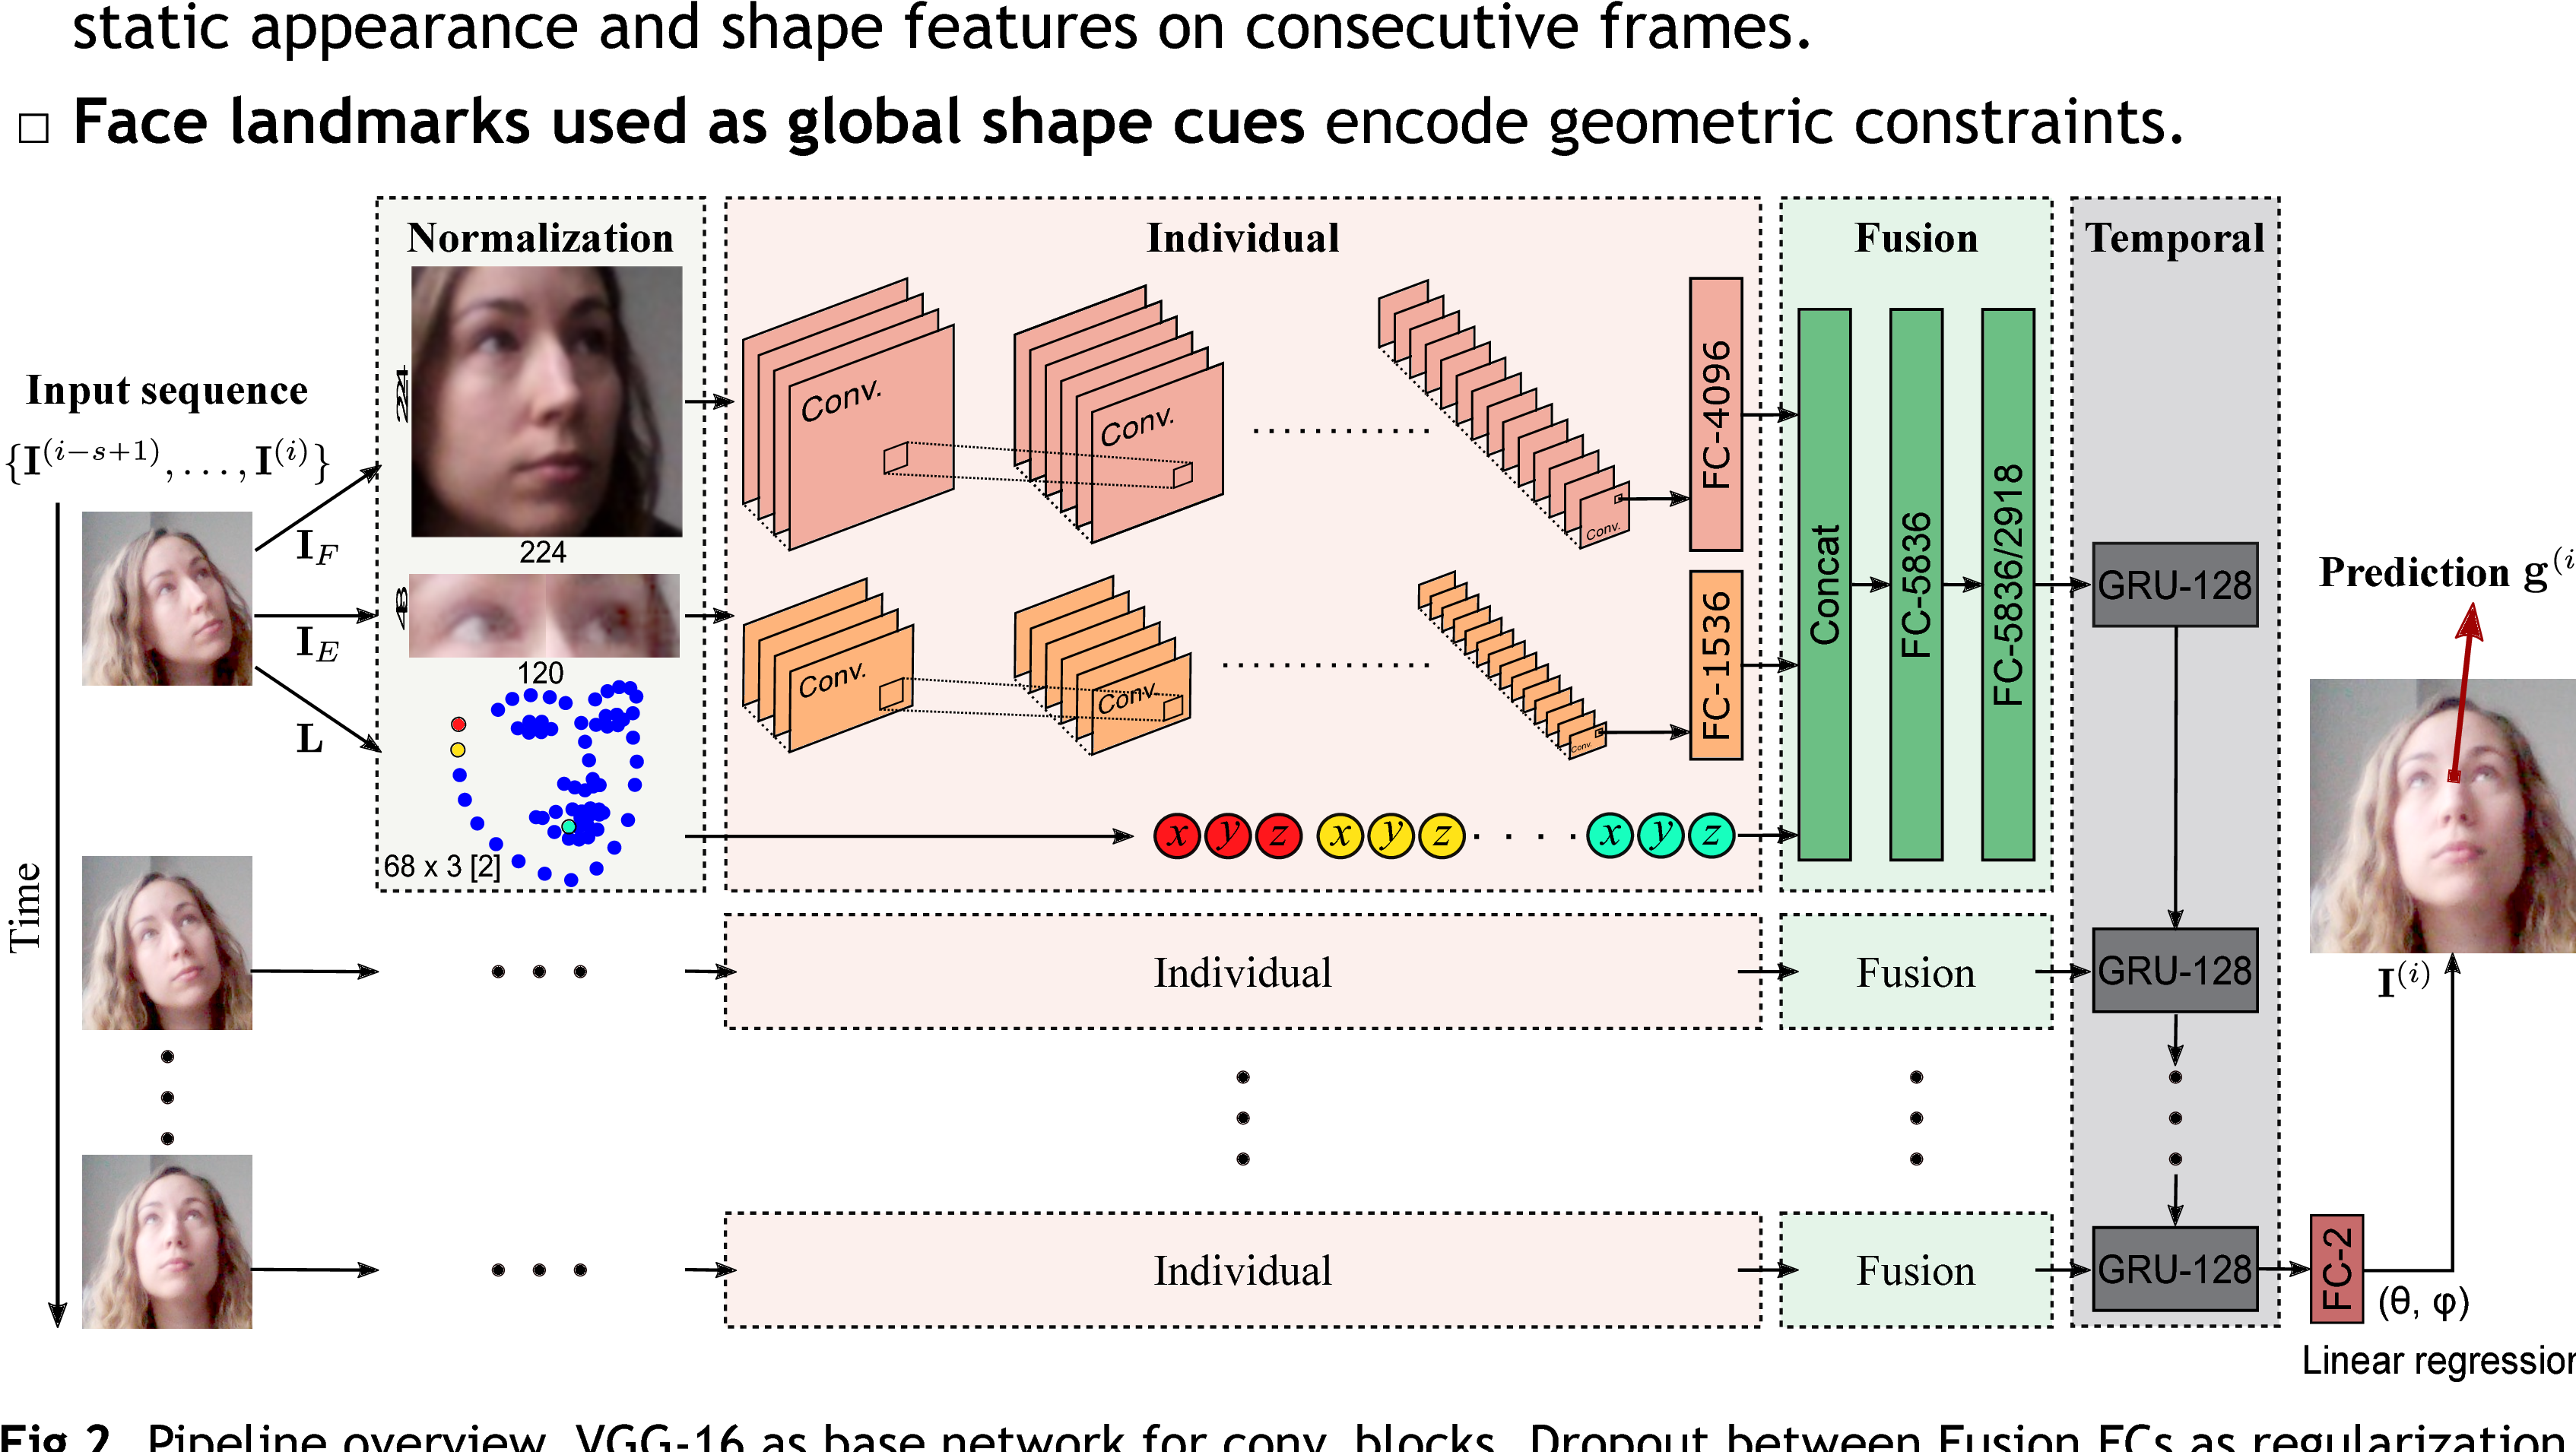 Figure 1 for Recurrent CNN for 3D Gaze Estimation using Appearance and Shape Cues